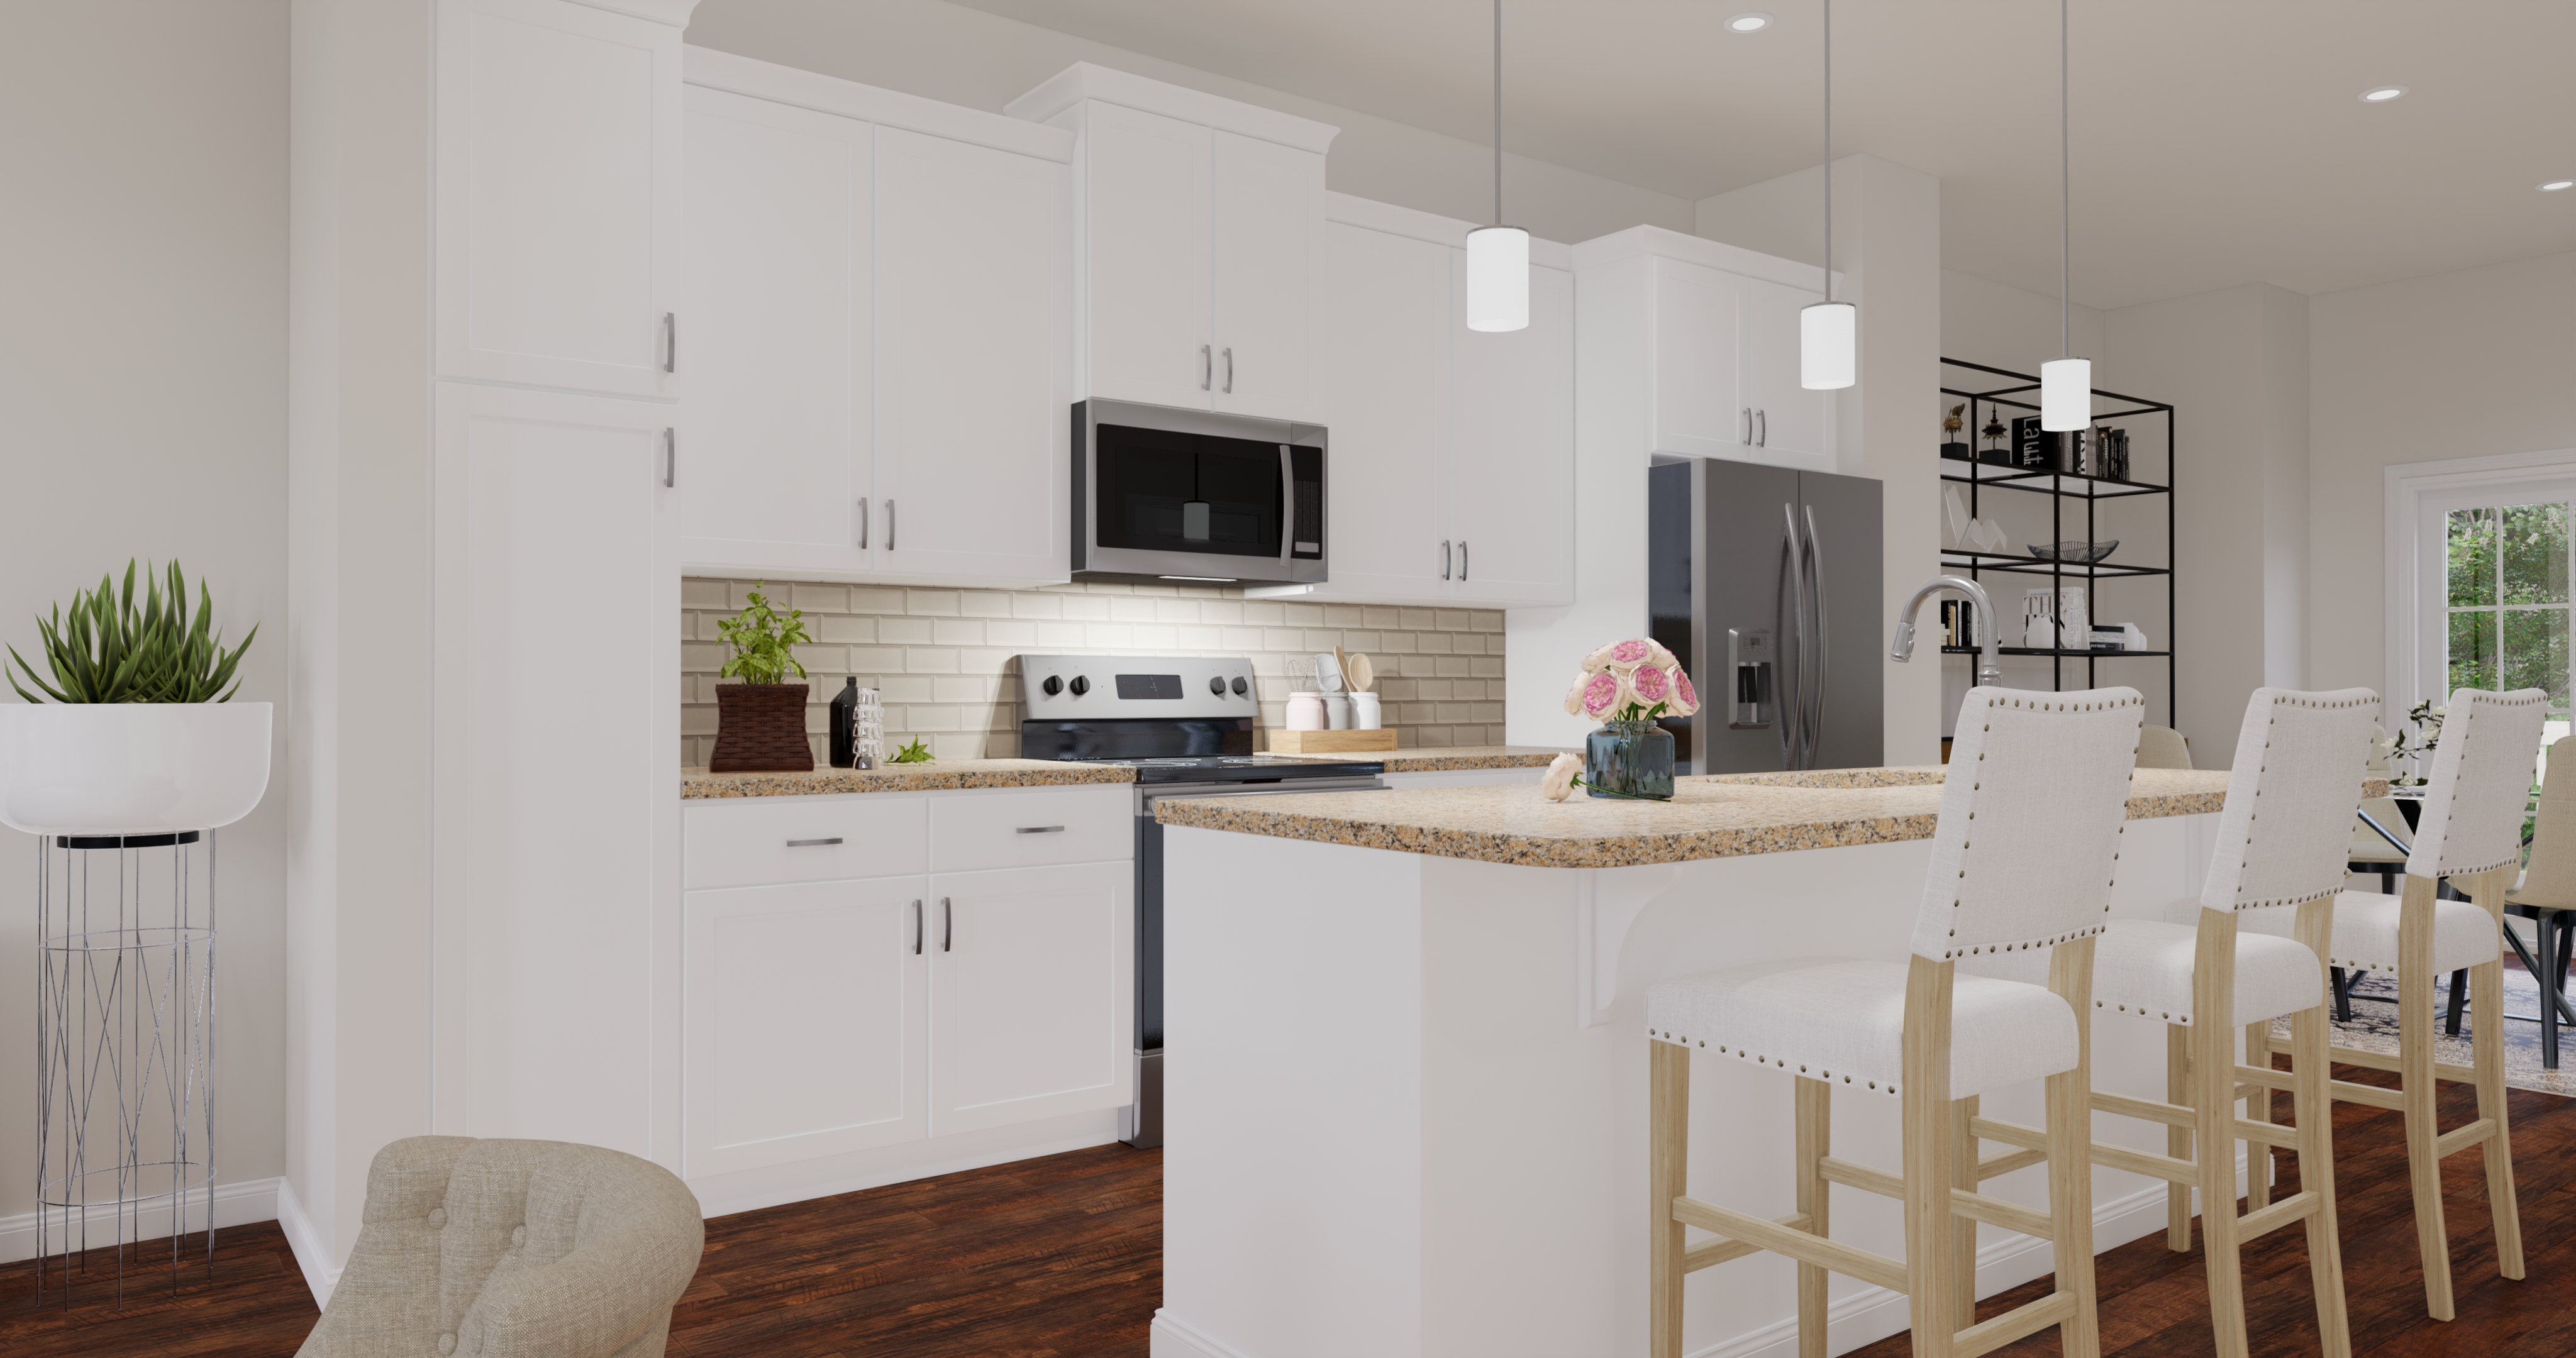 alexandria gourmet kitchen rendering with stainless steel appliances and sit-in island bar